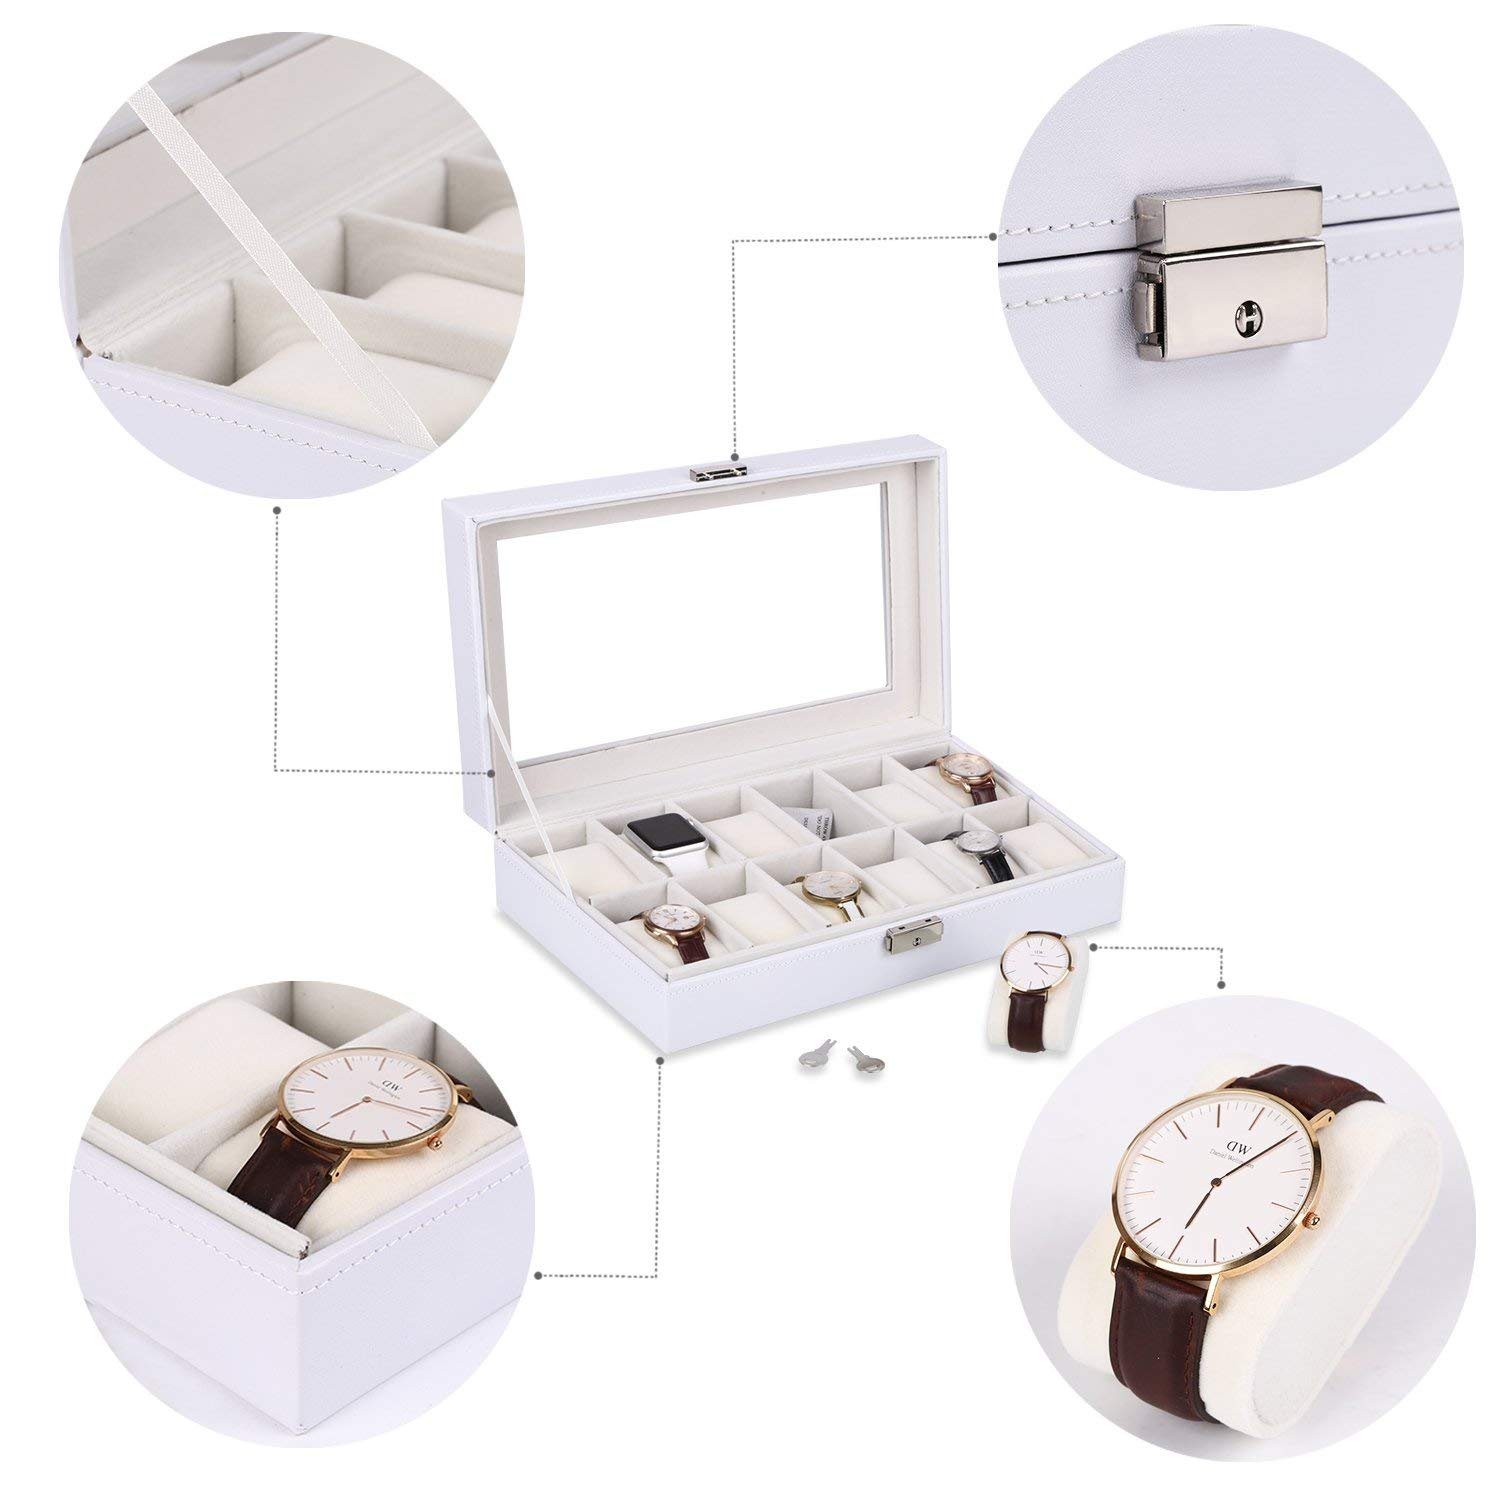 Amazon.com: VIPITH Watch Box 12 Slots Watch Case for Men Women Leather Watch Organizer Holder Display Storage Case with Glass Lid White: Home & Kitchen